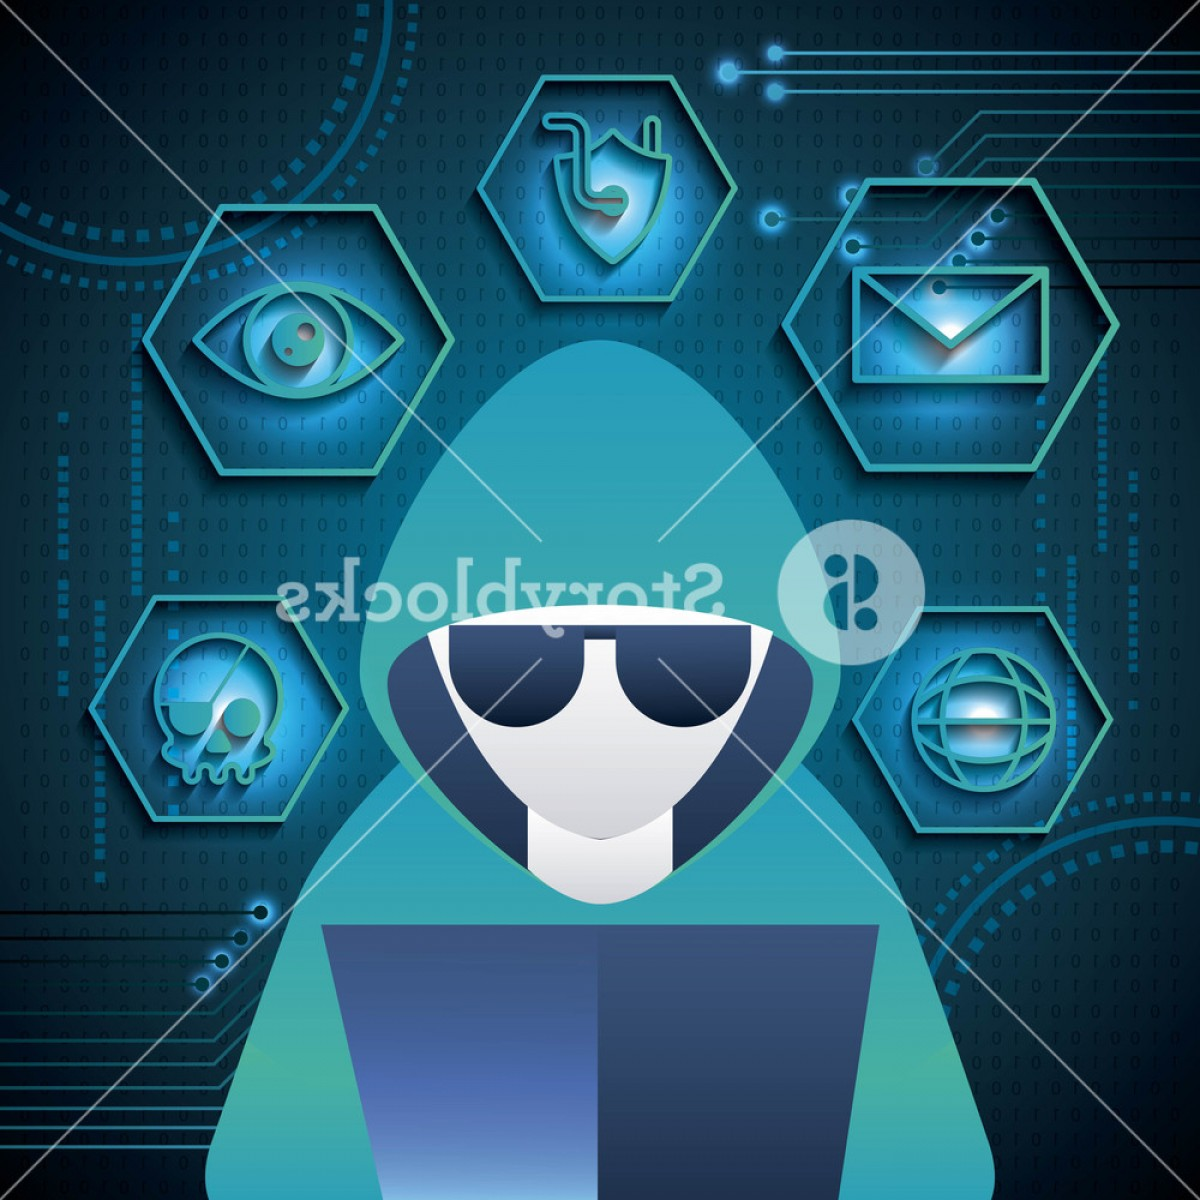 Cyber Defense Vector: Cyber Security Technology Hacker Computer Skull Piracy Crime Shield Protection Vector Illustration Sbcnziizjgox